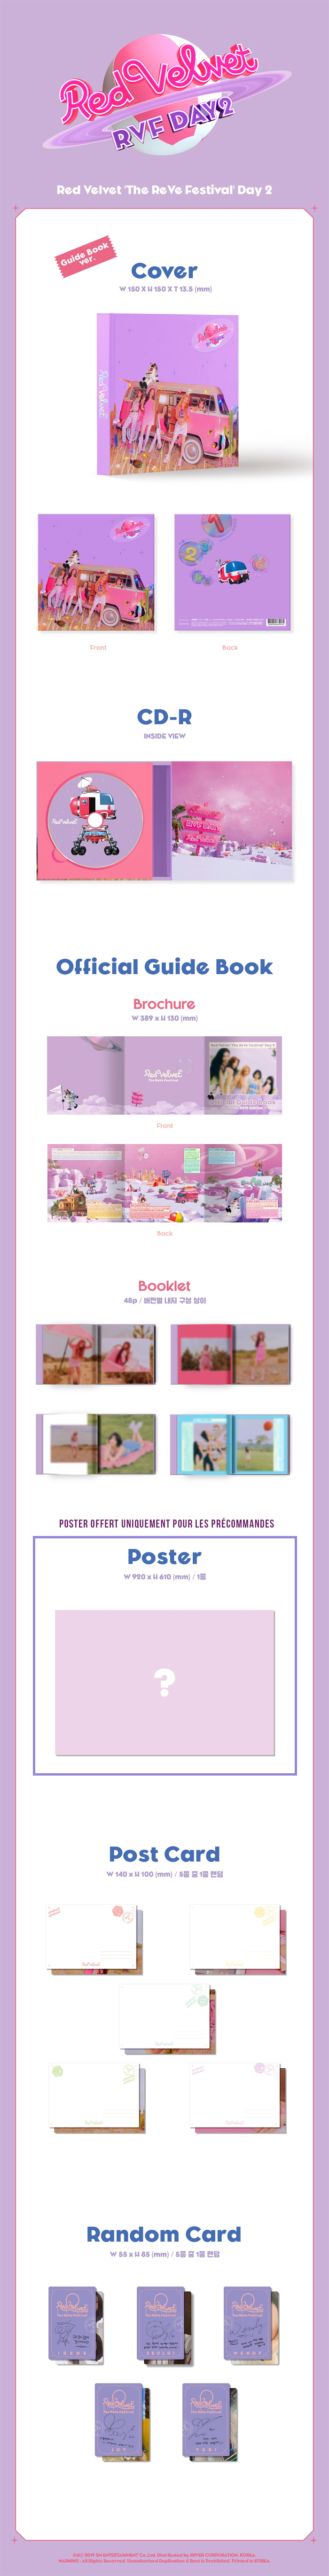 Visuel Red Velvet Guide book 2